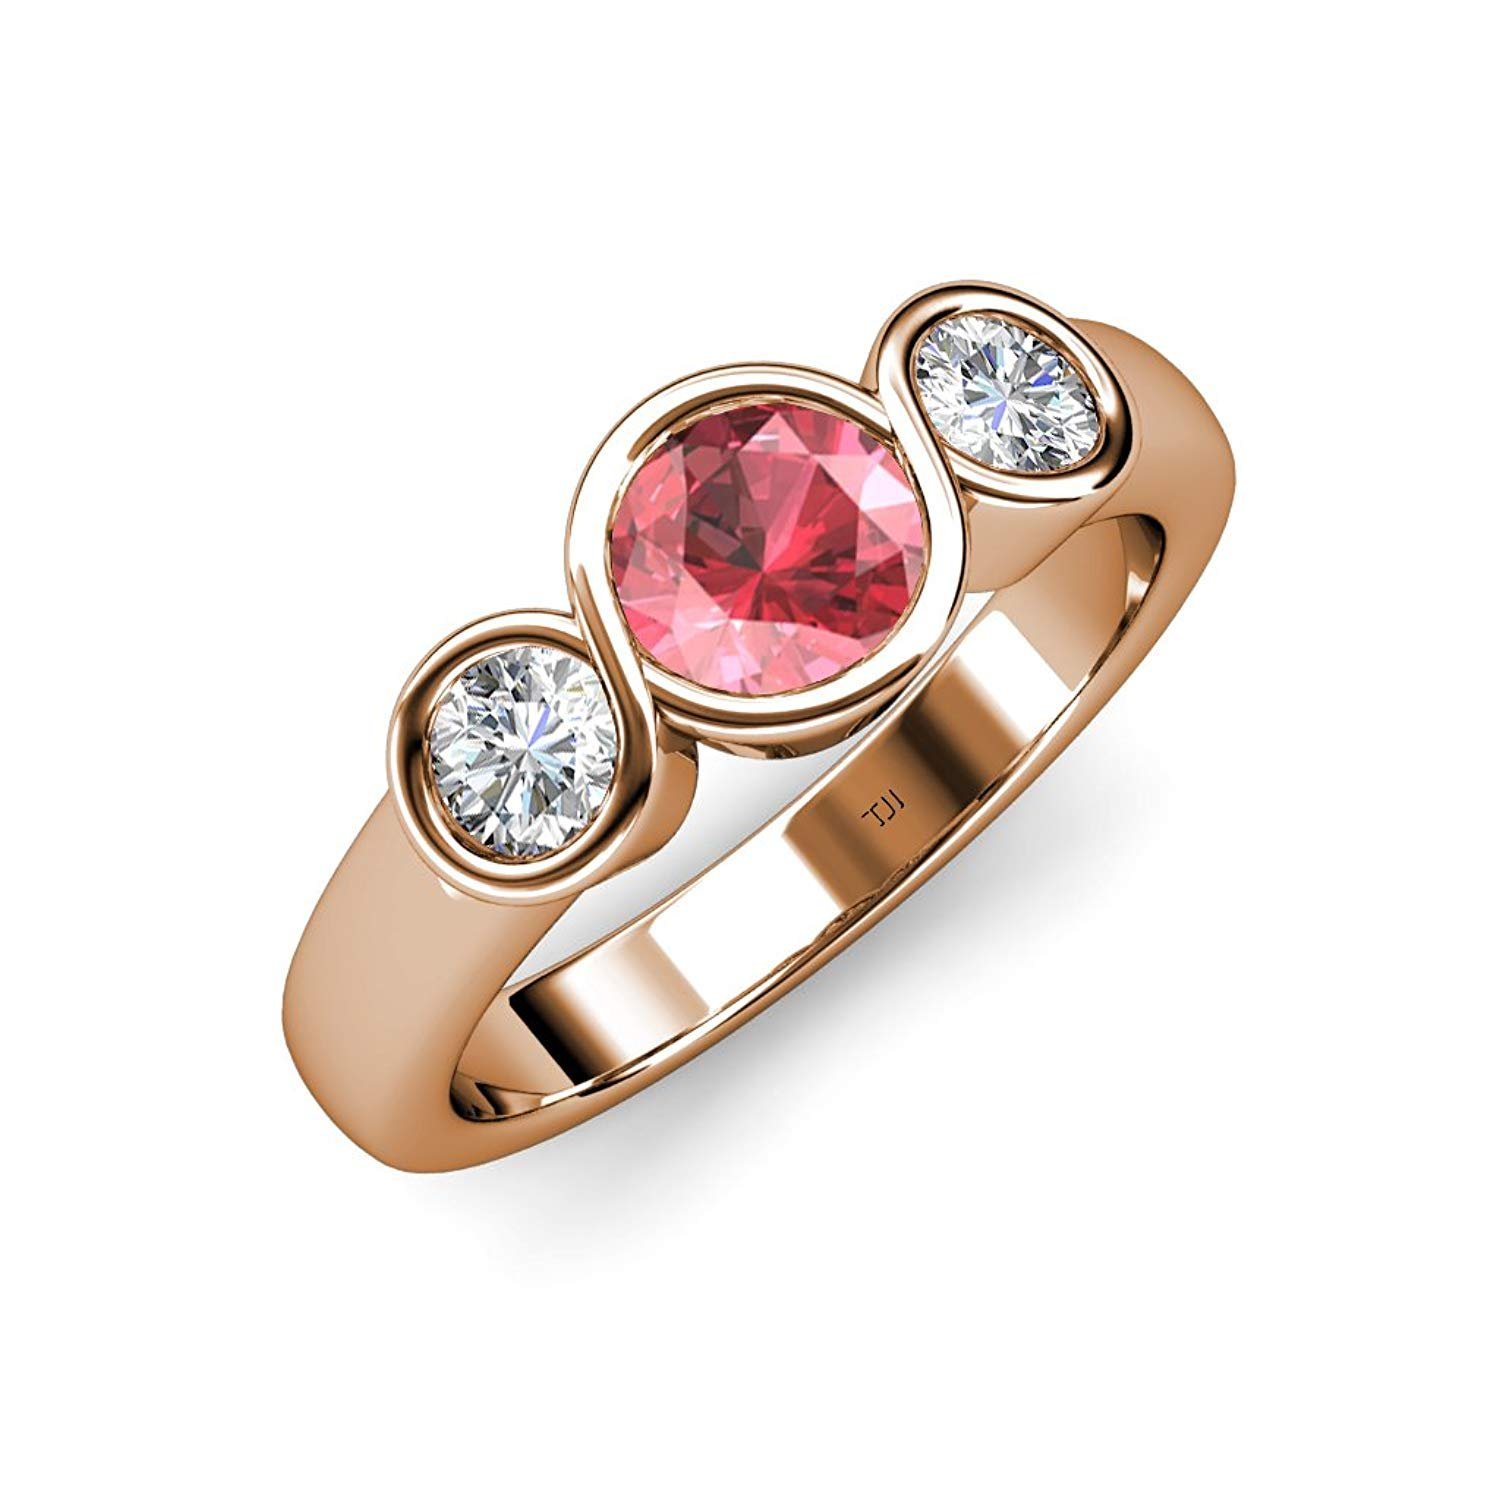 Pink Tourmaline and Diamond (SI2, G) Infinity Three Stone Ring 1.85 ct tw in 14K Rose Gold.size 5.5 by TriJewels